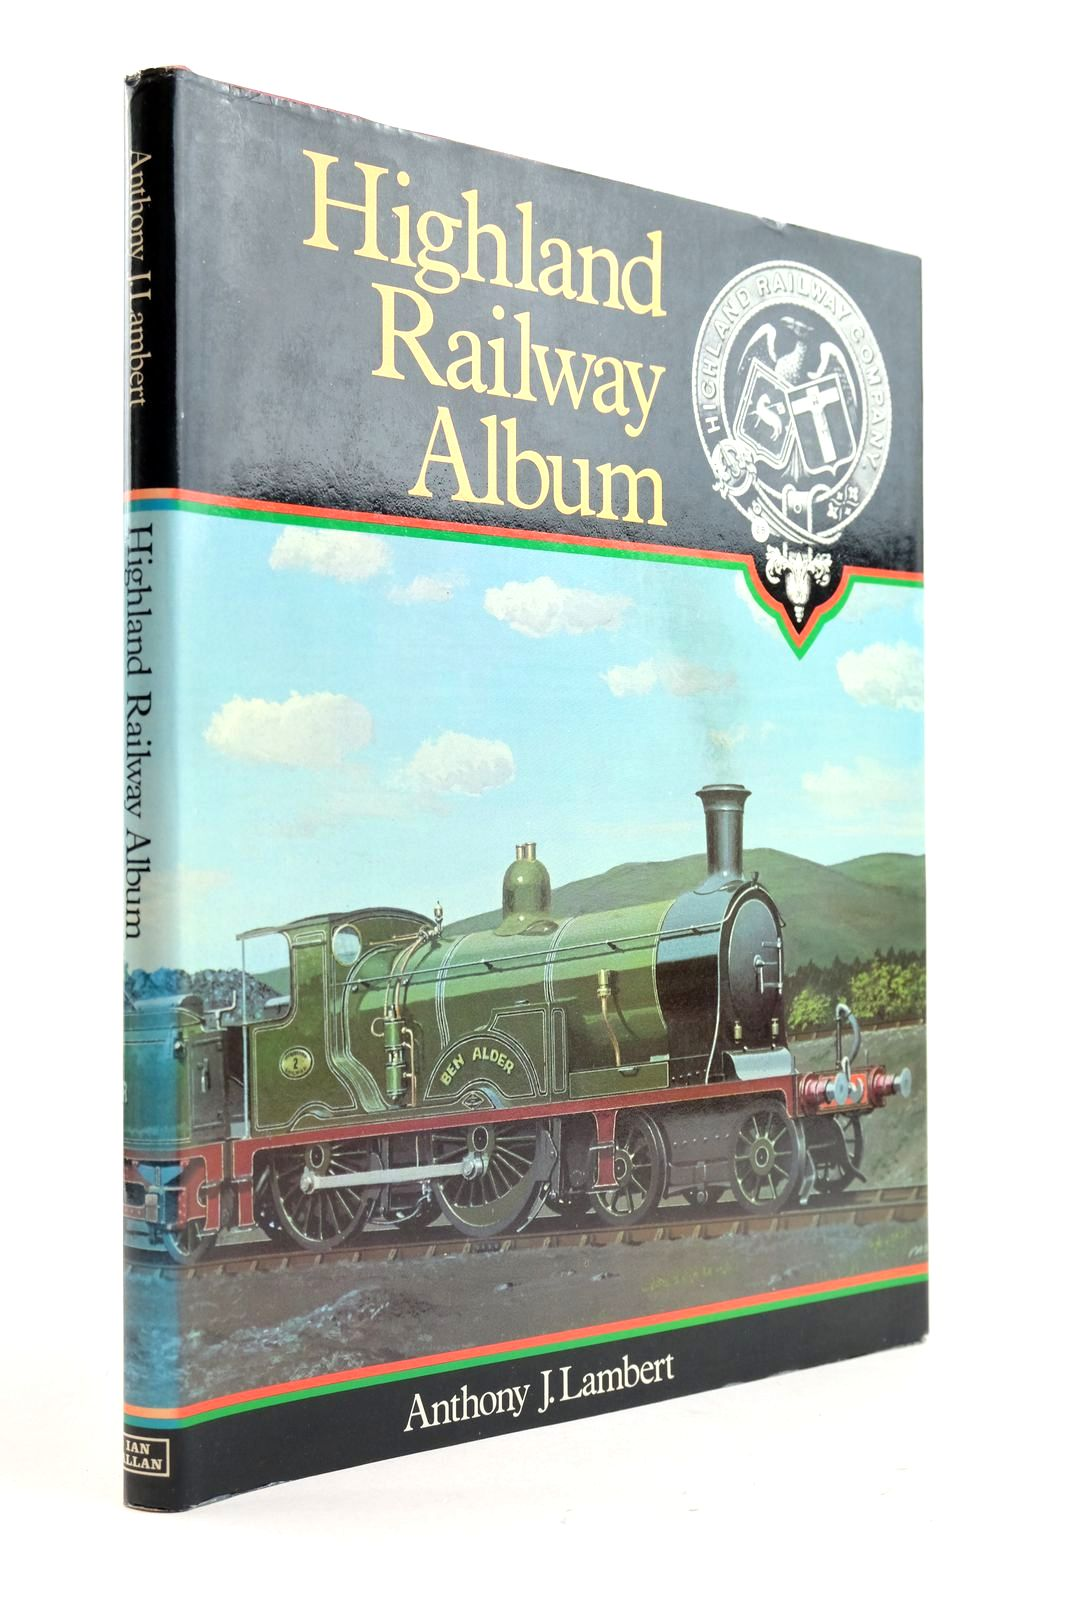 Photo of HIGHLAND RAILWAY ALBUM written by Lambert, Anthony J. published by Ian Allan (STOCK CODE: 2133014)  for sale by Stella & Rose's Books